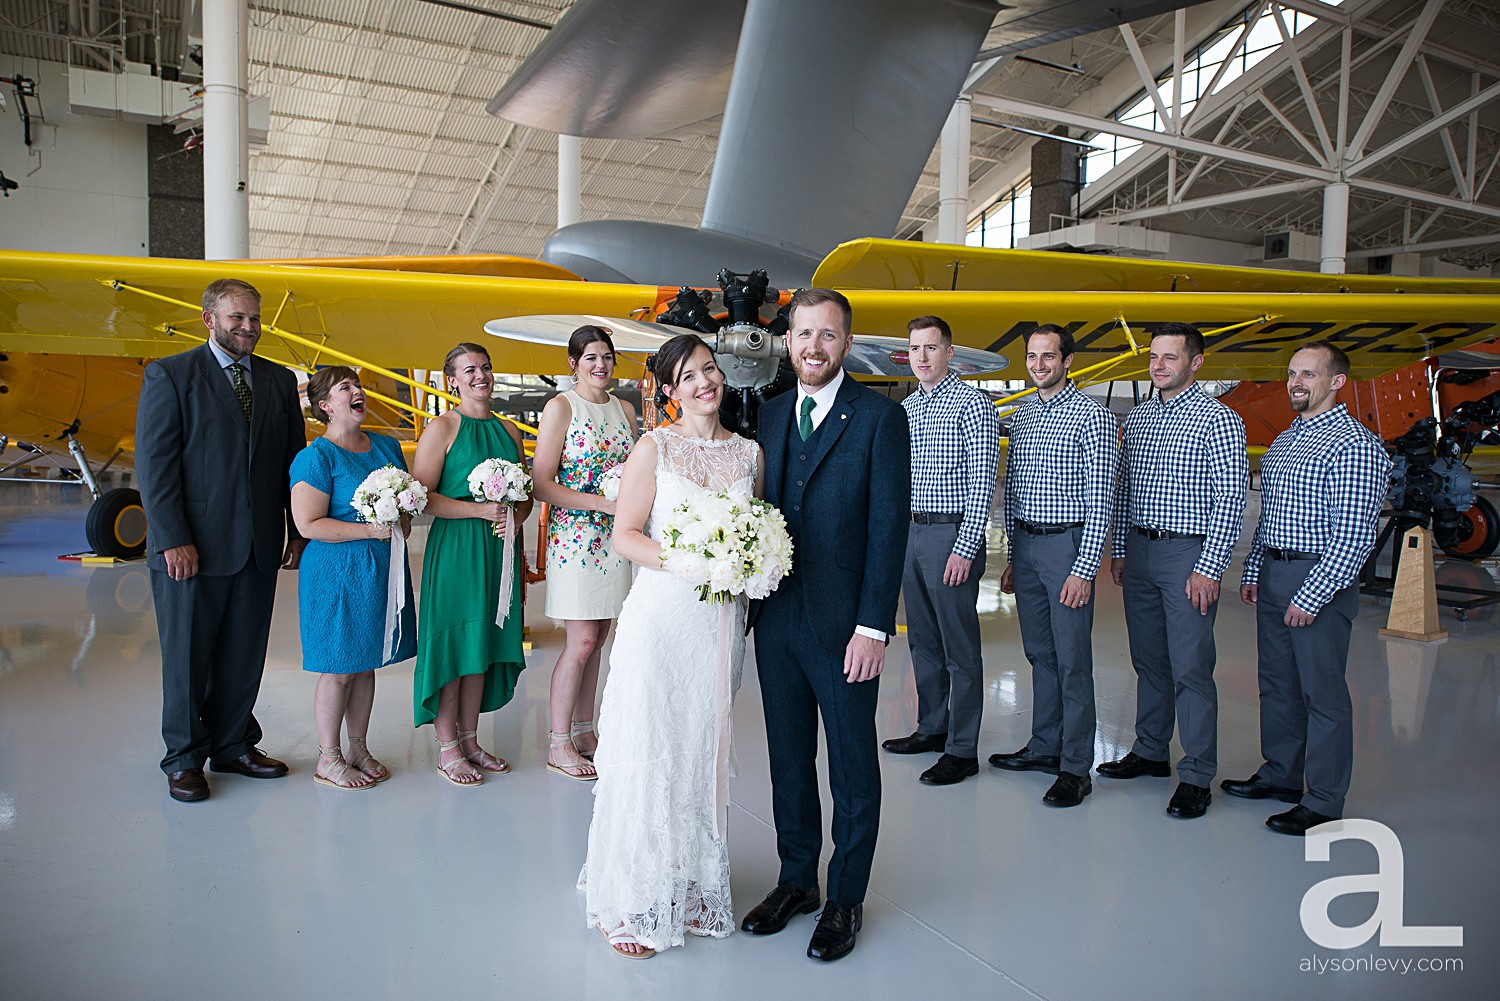 McMinnville-Aviation-Museum-Wedding-Photography_0011.jpg